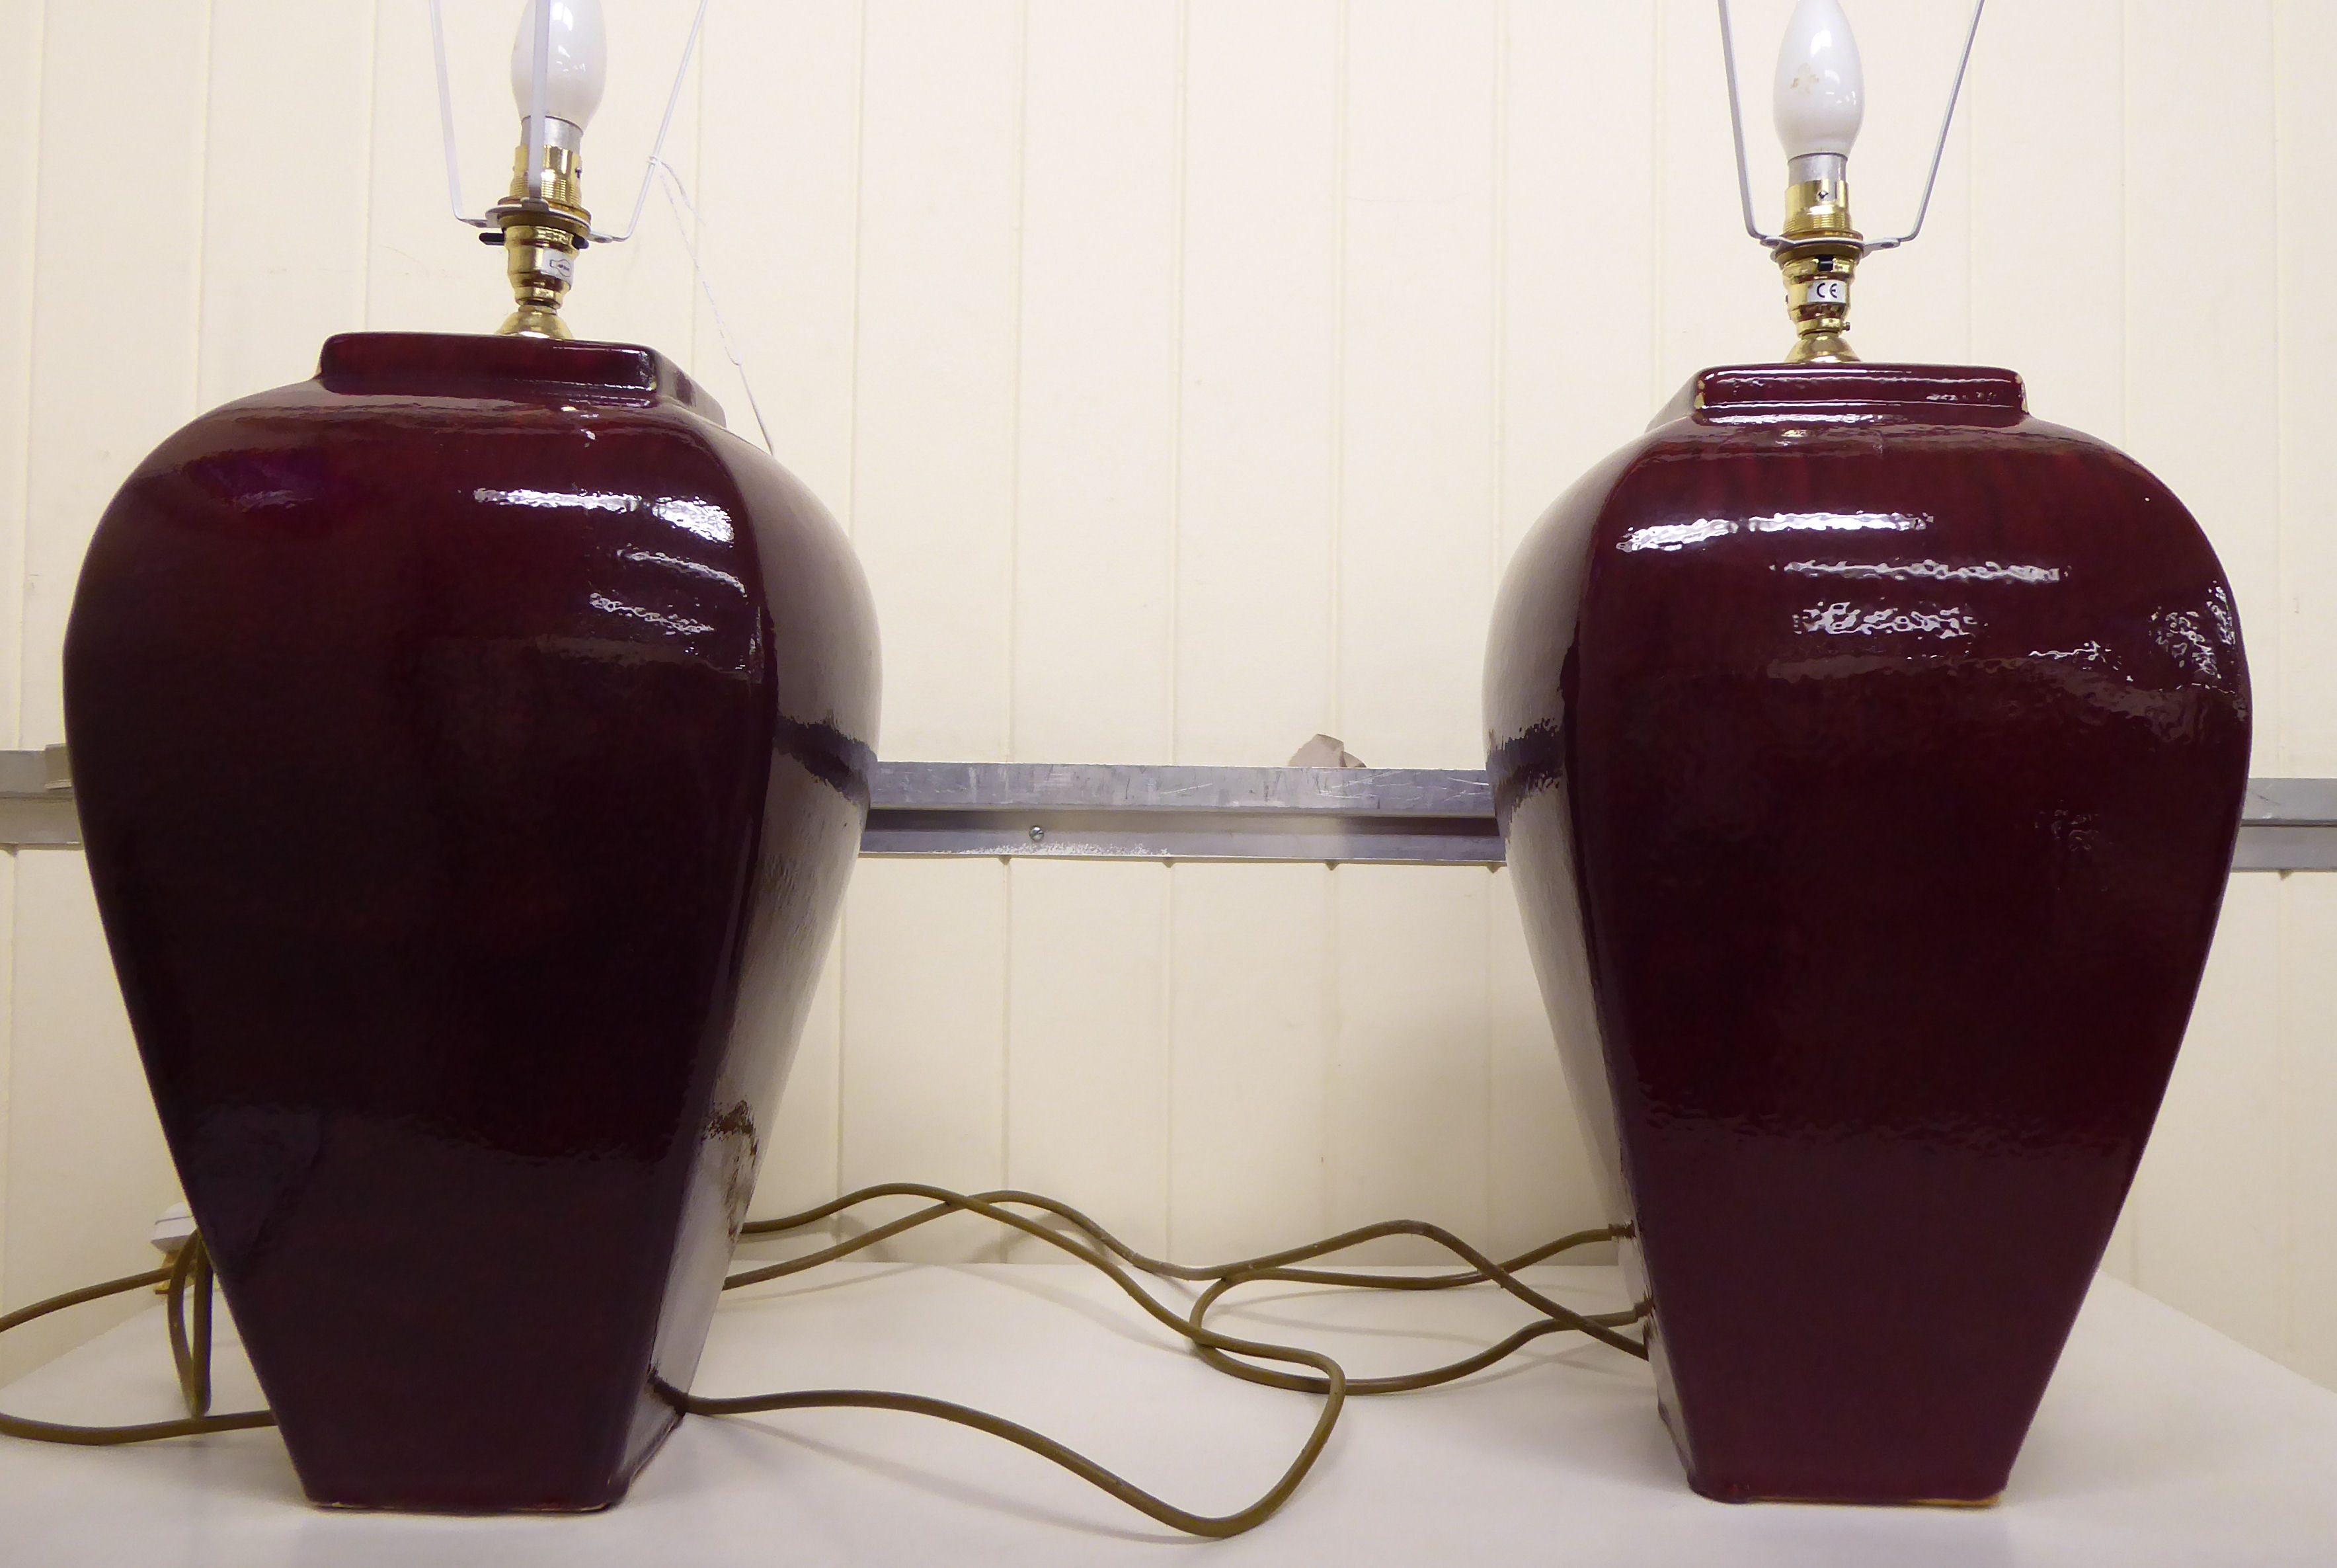 Lot 117 - A pair of modern Chinese sang de boeuf glazed china vase design table lamps,